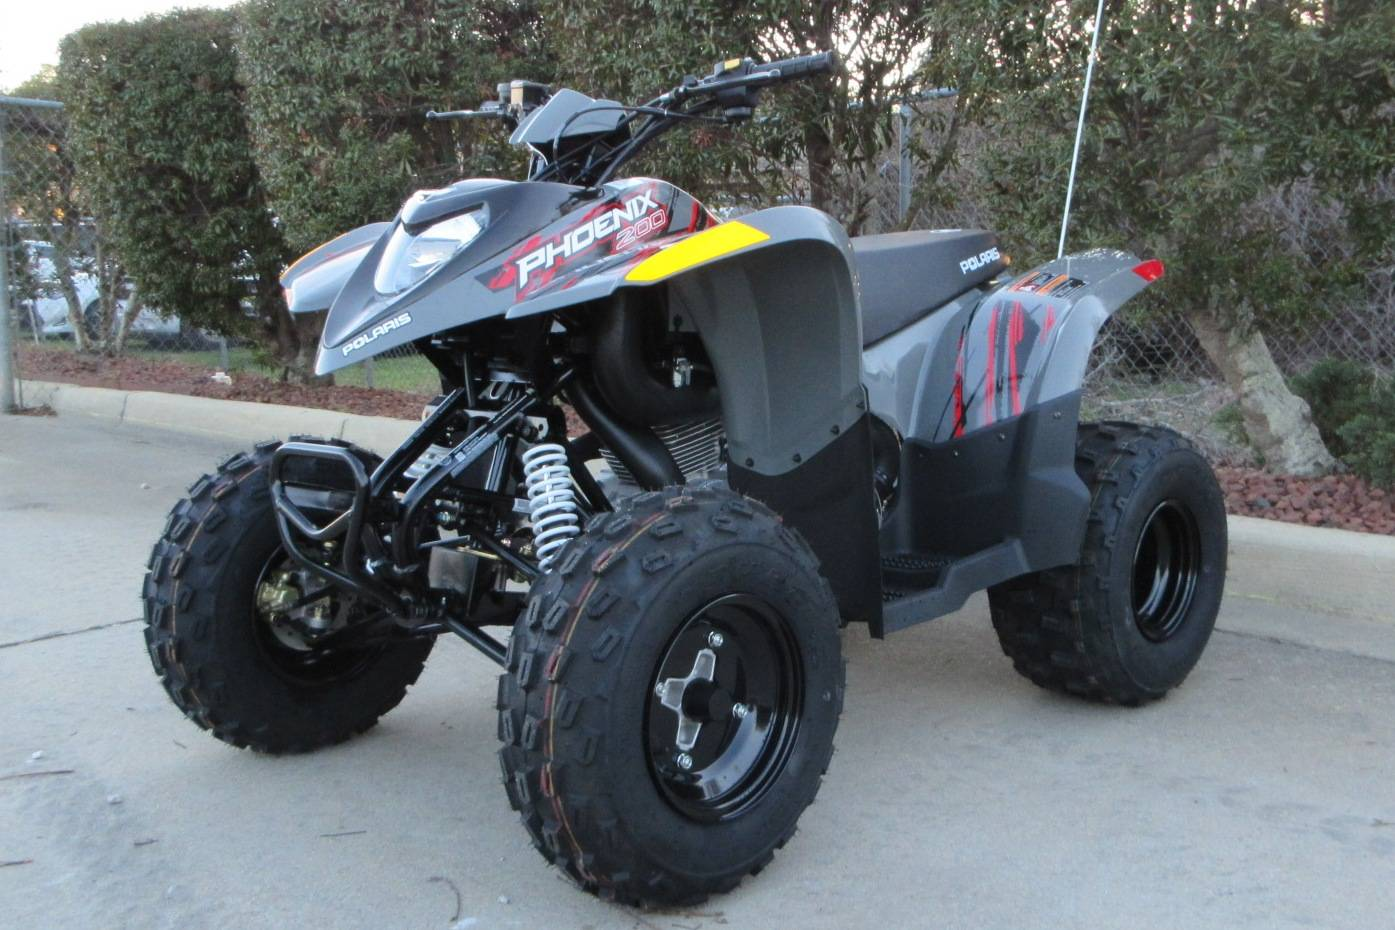 2018 Polaris Phoenix 200 in Sumter, South Carolina